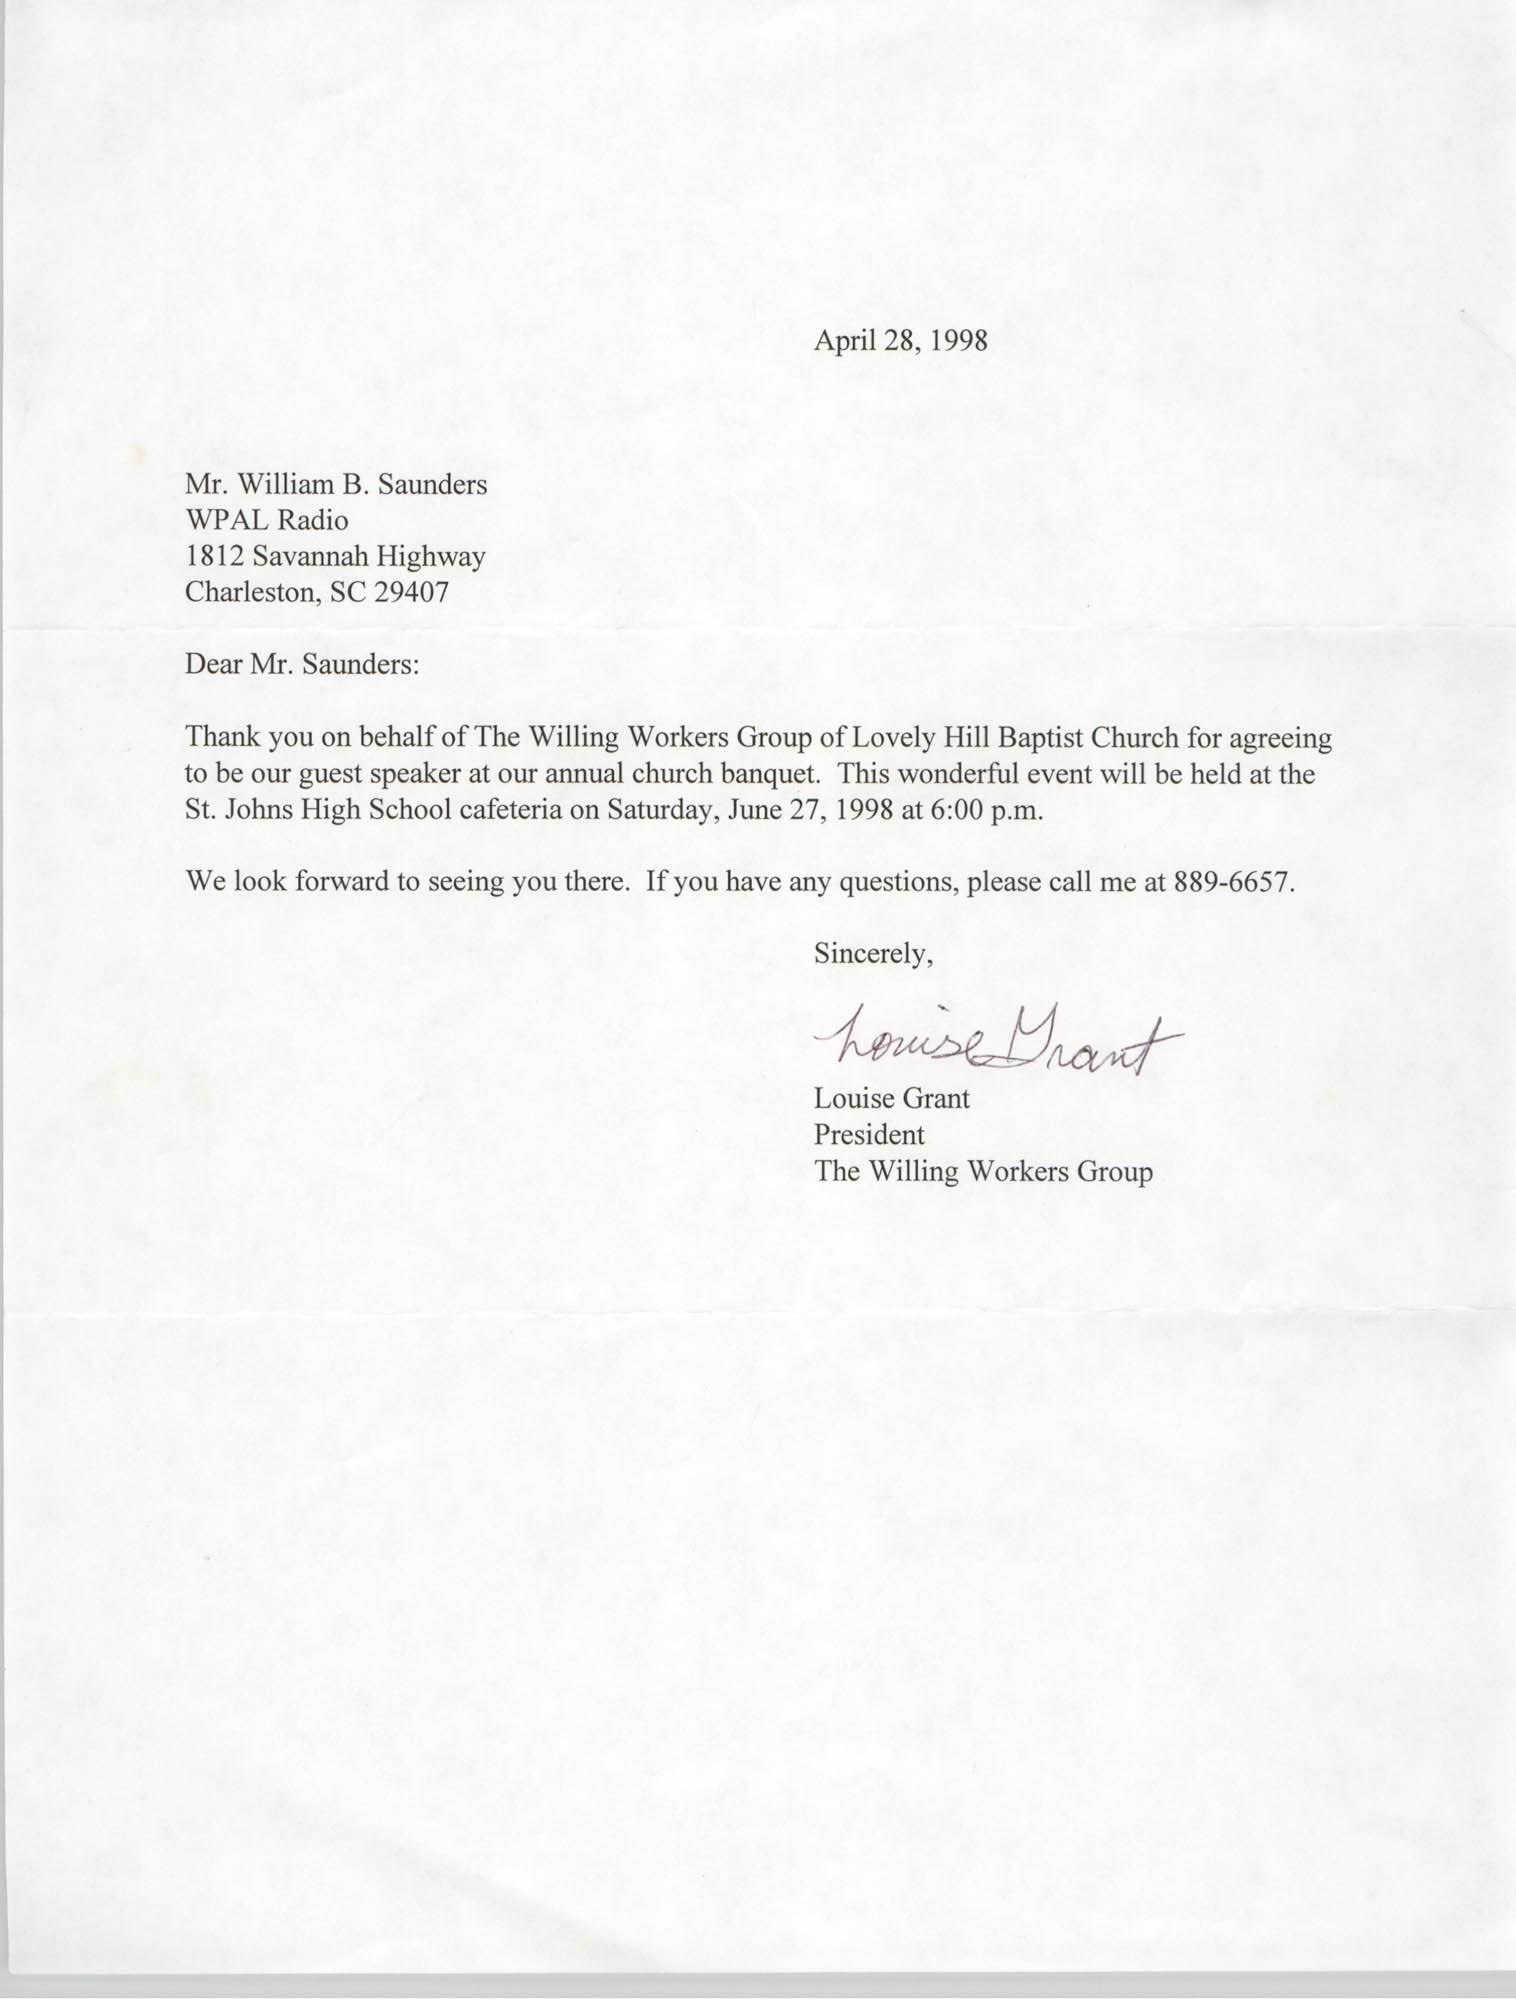 Letter from Louise Grant to William Saunders, August 8, 1979